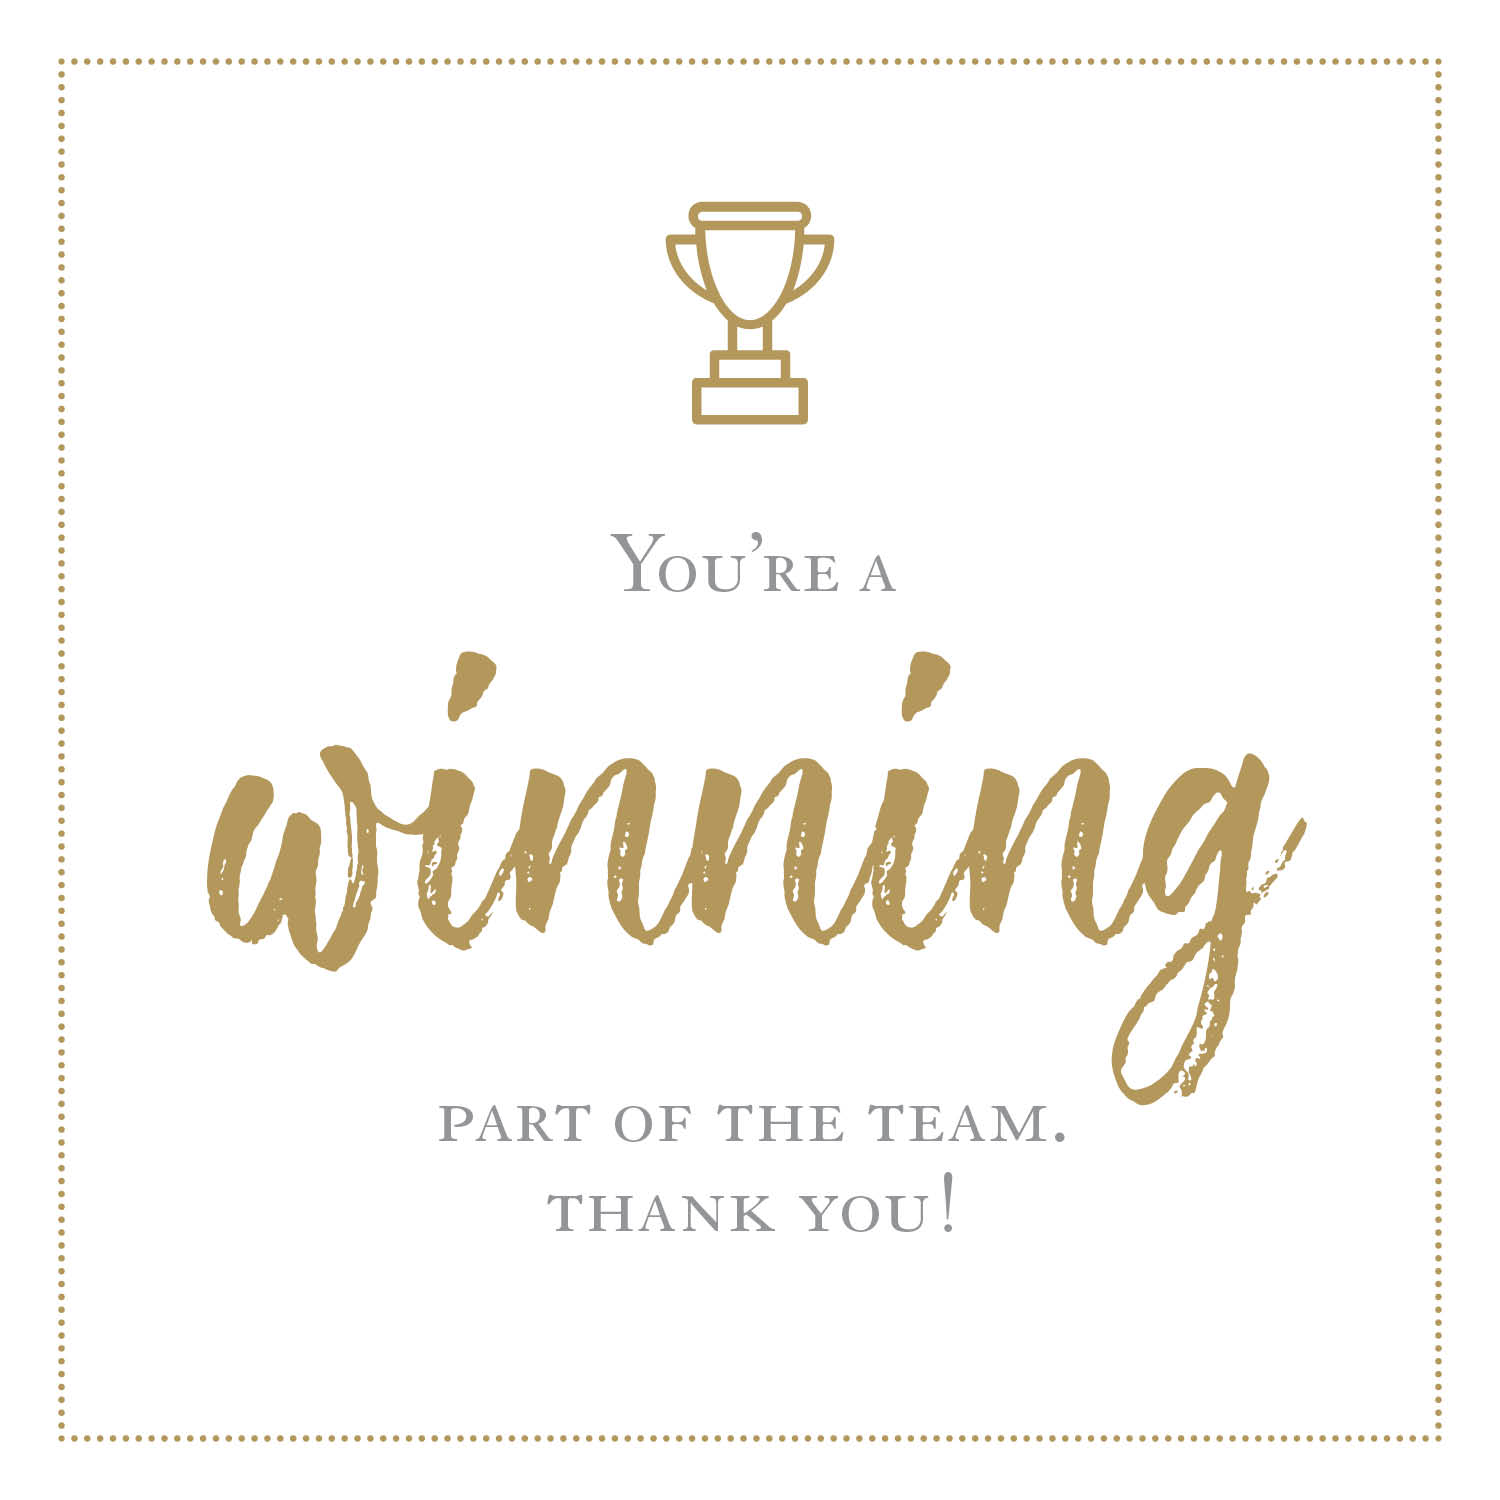 You're a winning part of the team